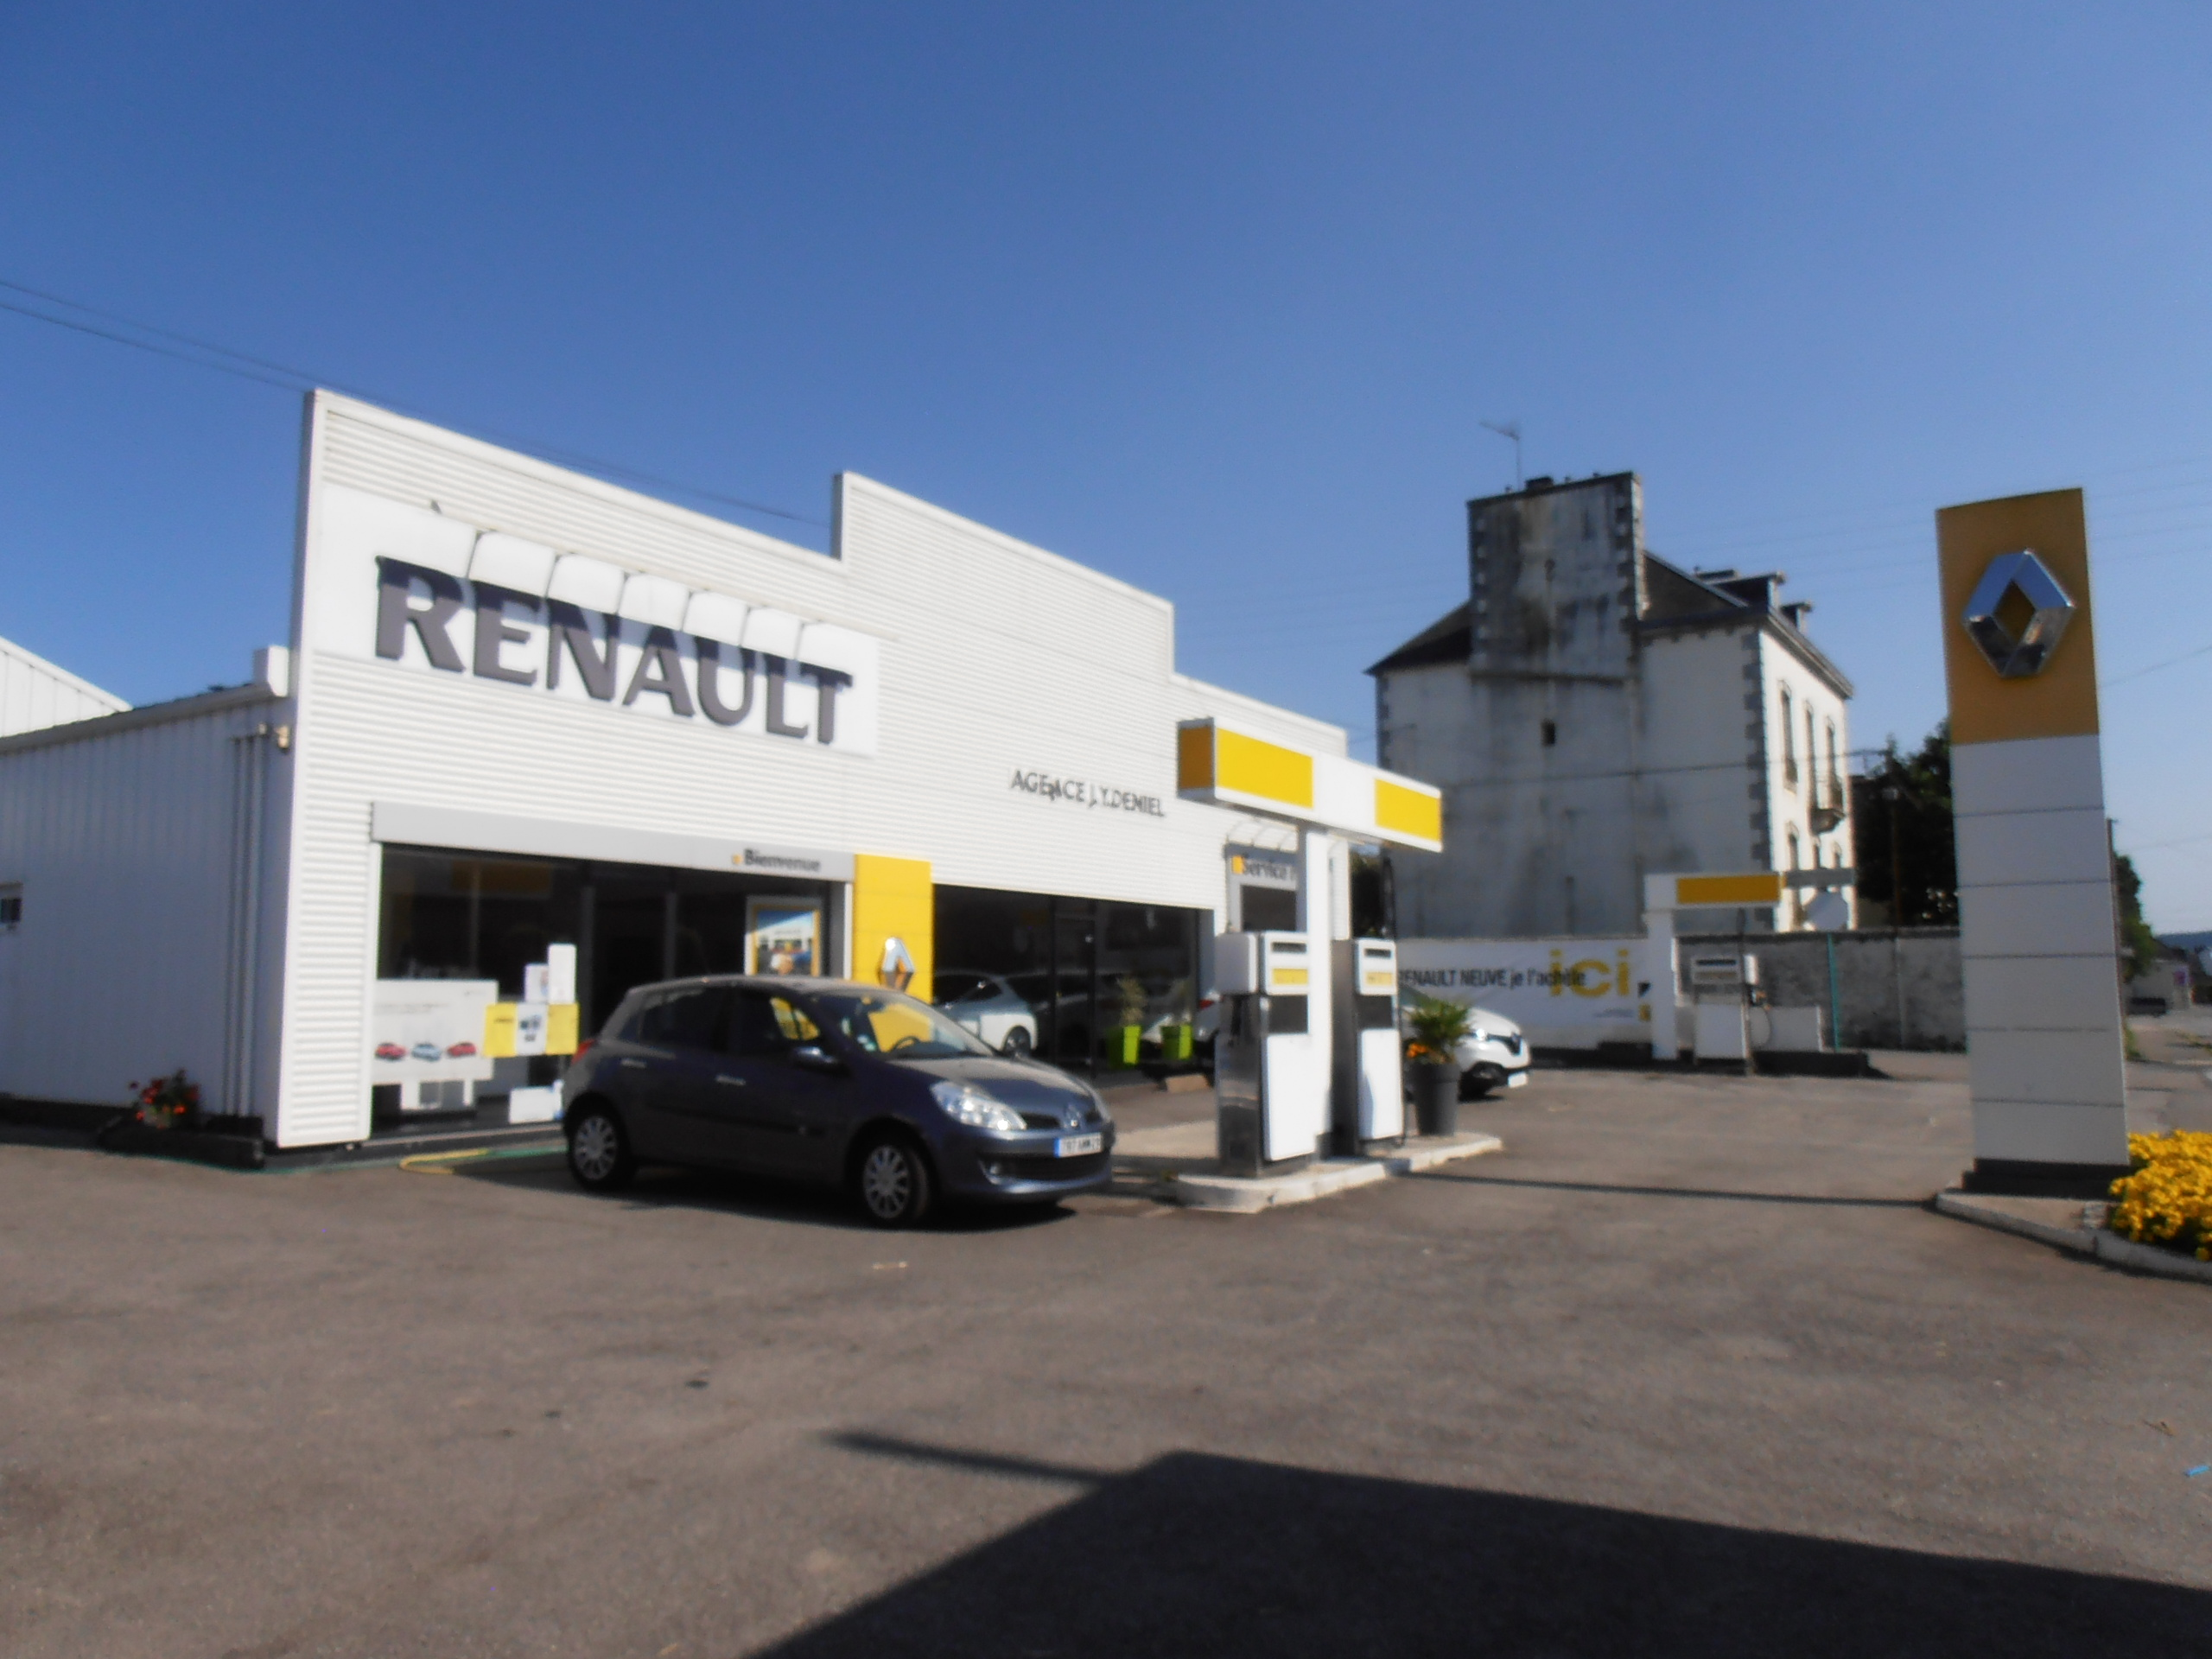 Garage renault for Garage renault poperinge belgique